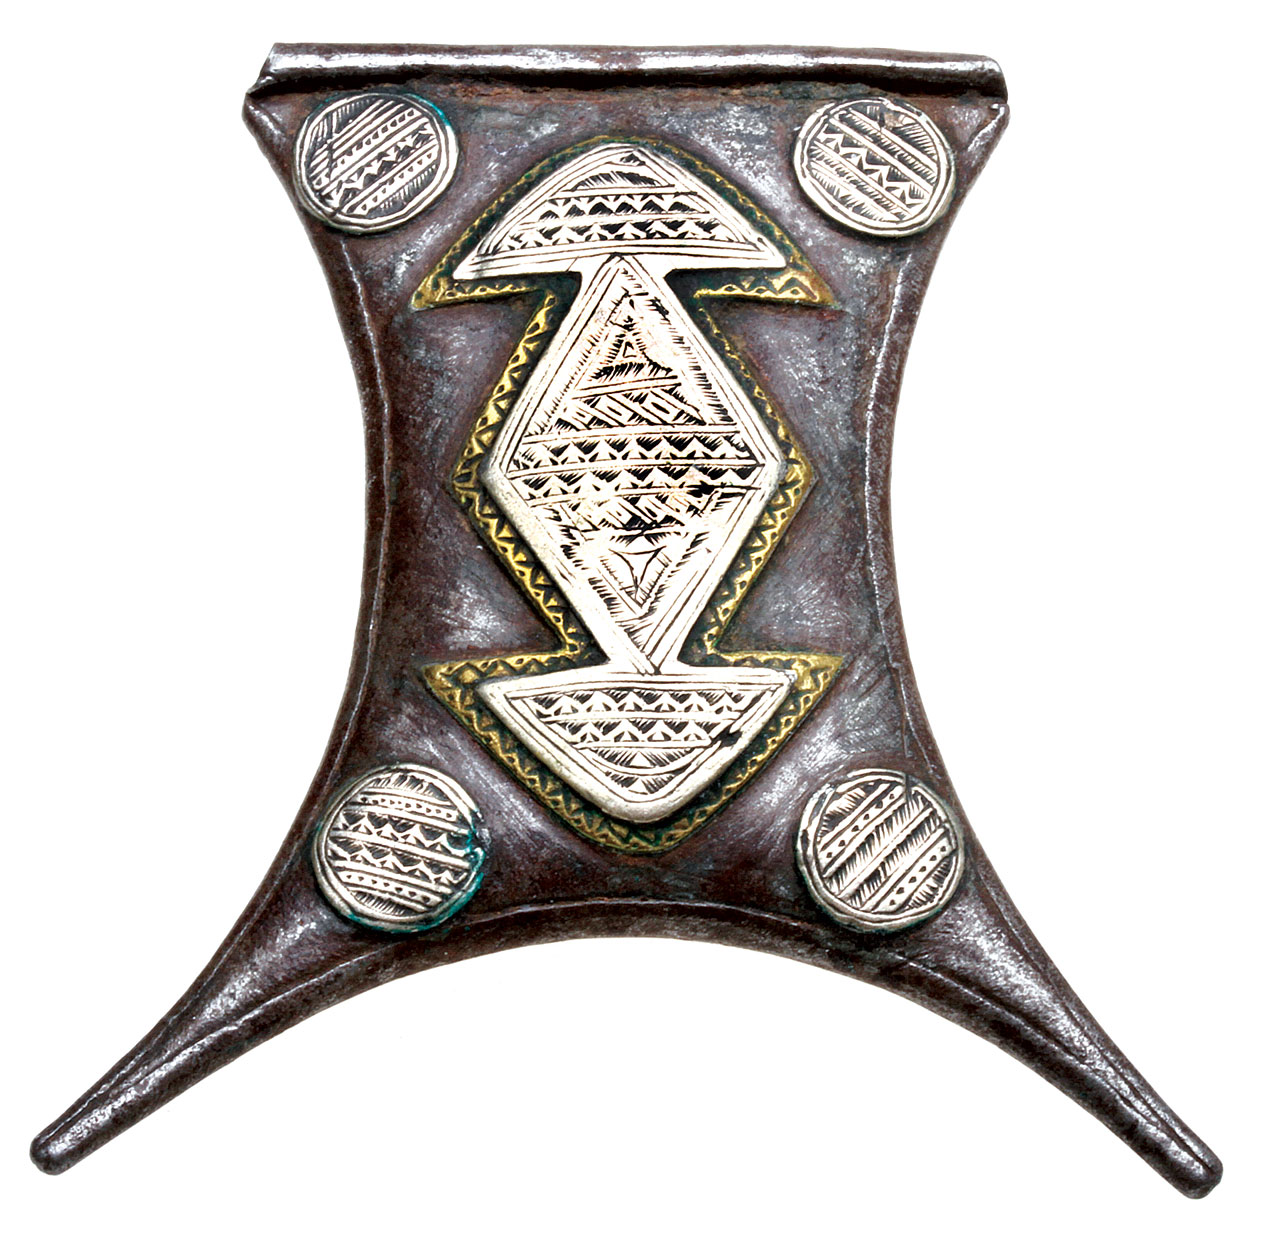 ELEGANT BUT WORN TUAREG GERBA-SHAPED TCHEROT AMULET, of white metal and brass sweated onto steel and cold-joined by bezels. The back has no decorations. This shape is a stylized goatskin, used to carry water. The amulet is 6.5 centimeters tall and subtly domed.